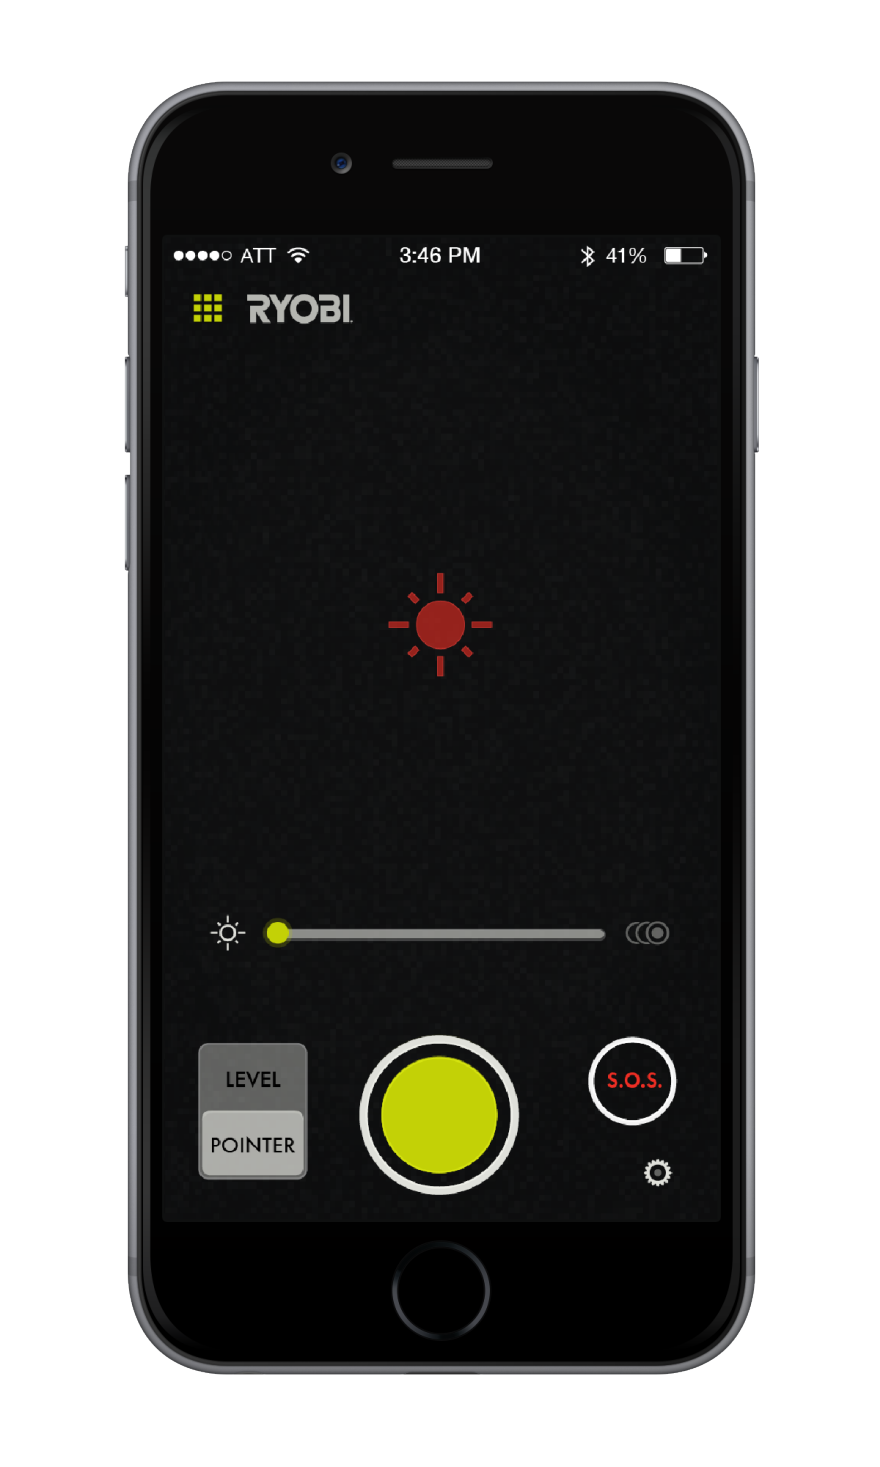 RYOBI: PHONE WORKS APP - by [x]cube labs / Core77 Design Awards